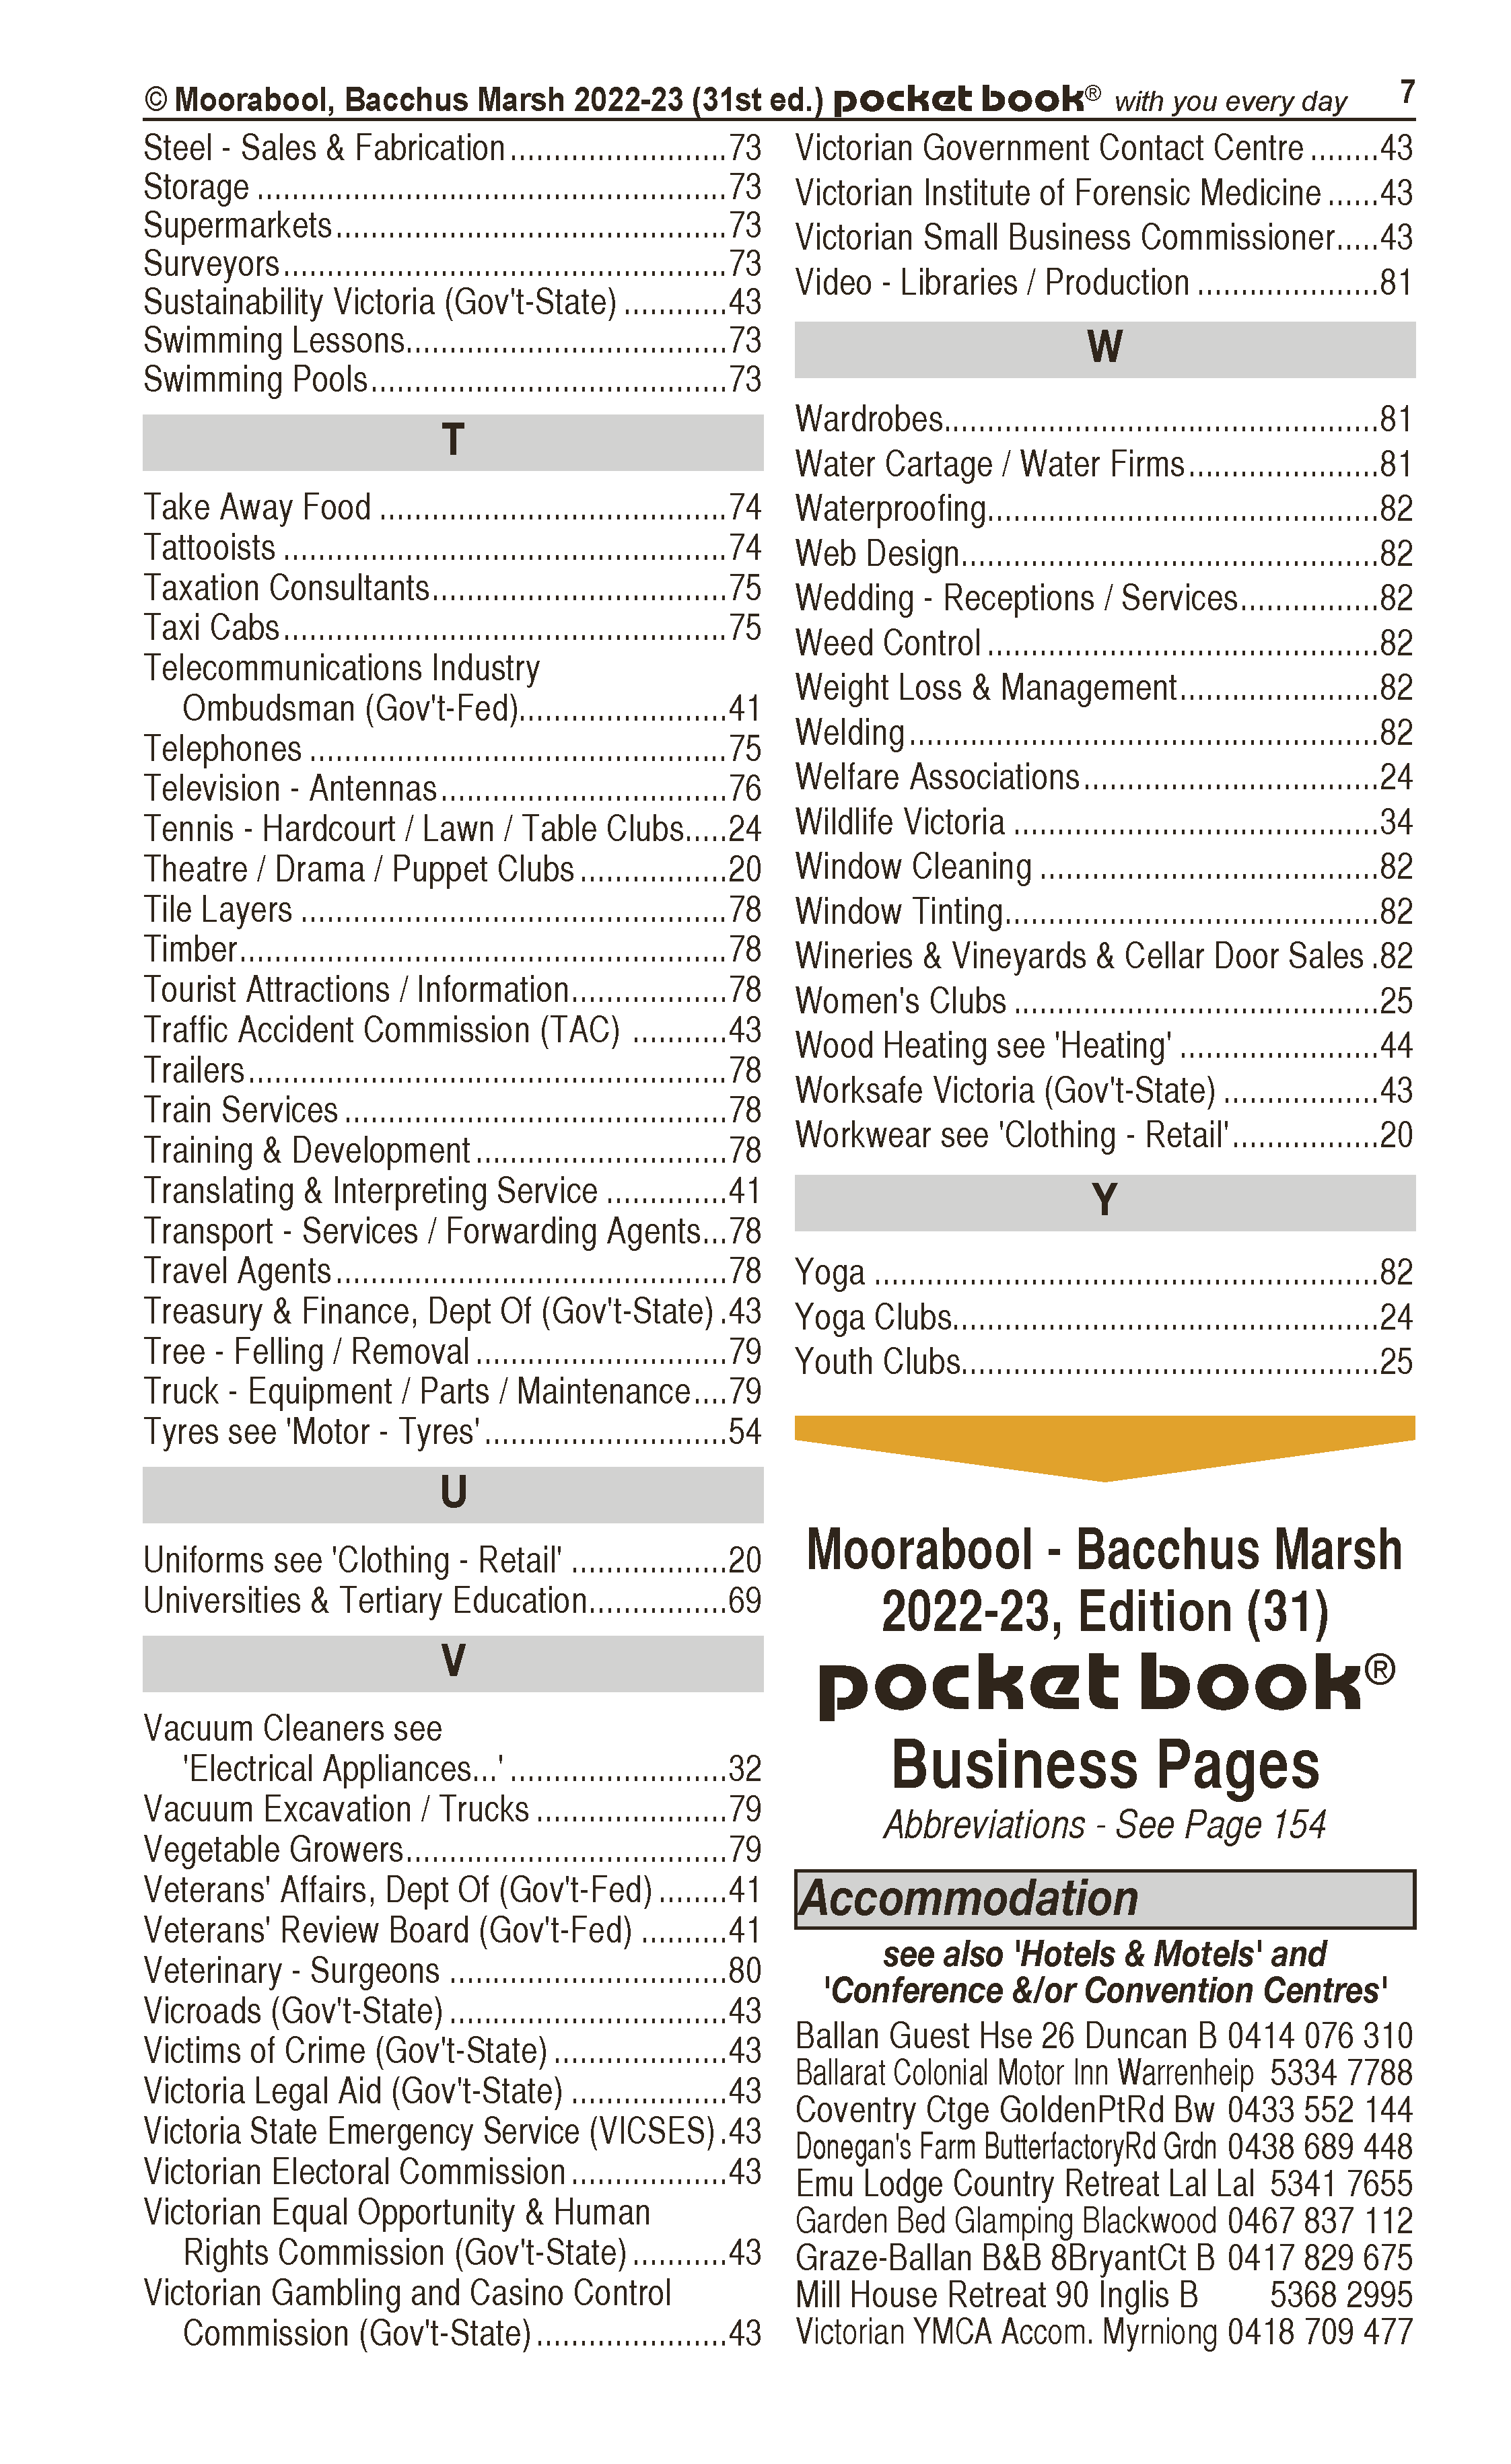 Macdonald James Accountants in Bacchus Marsh VIC - page 7